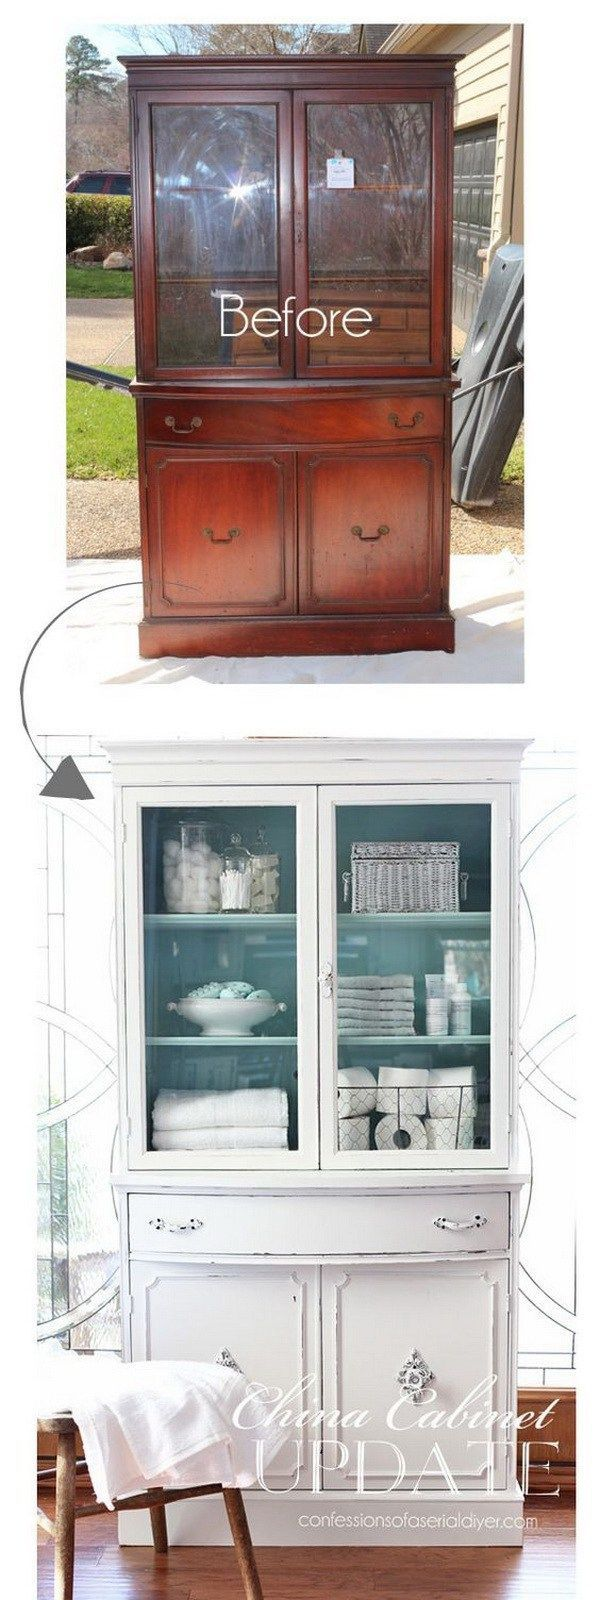 Thrift Store China Cabinet Makeover. Give your old cabinet a new shabby chic loo...